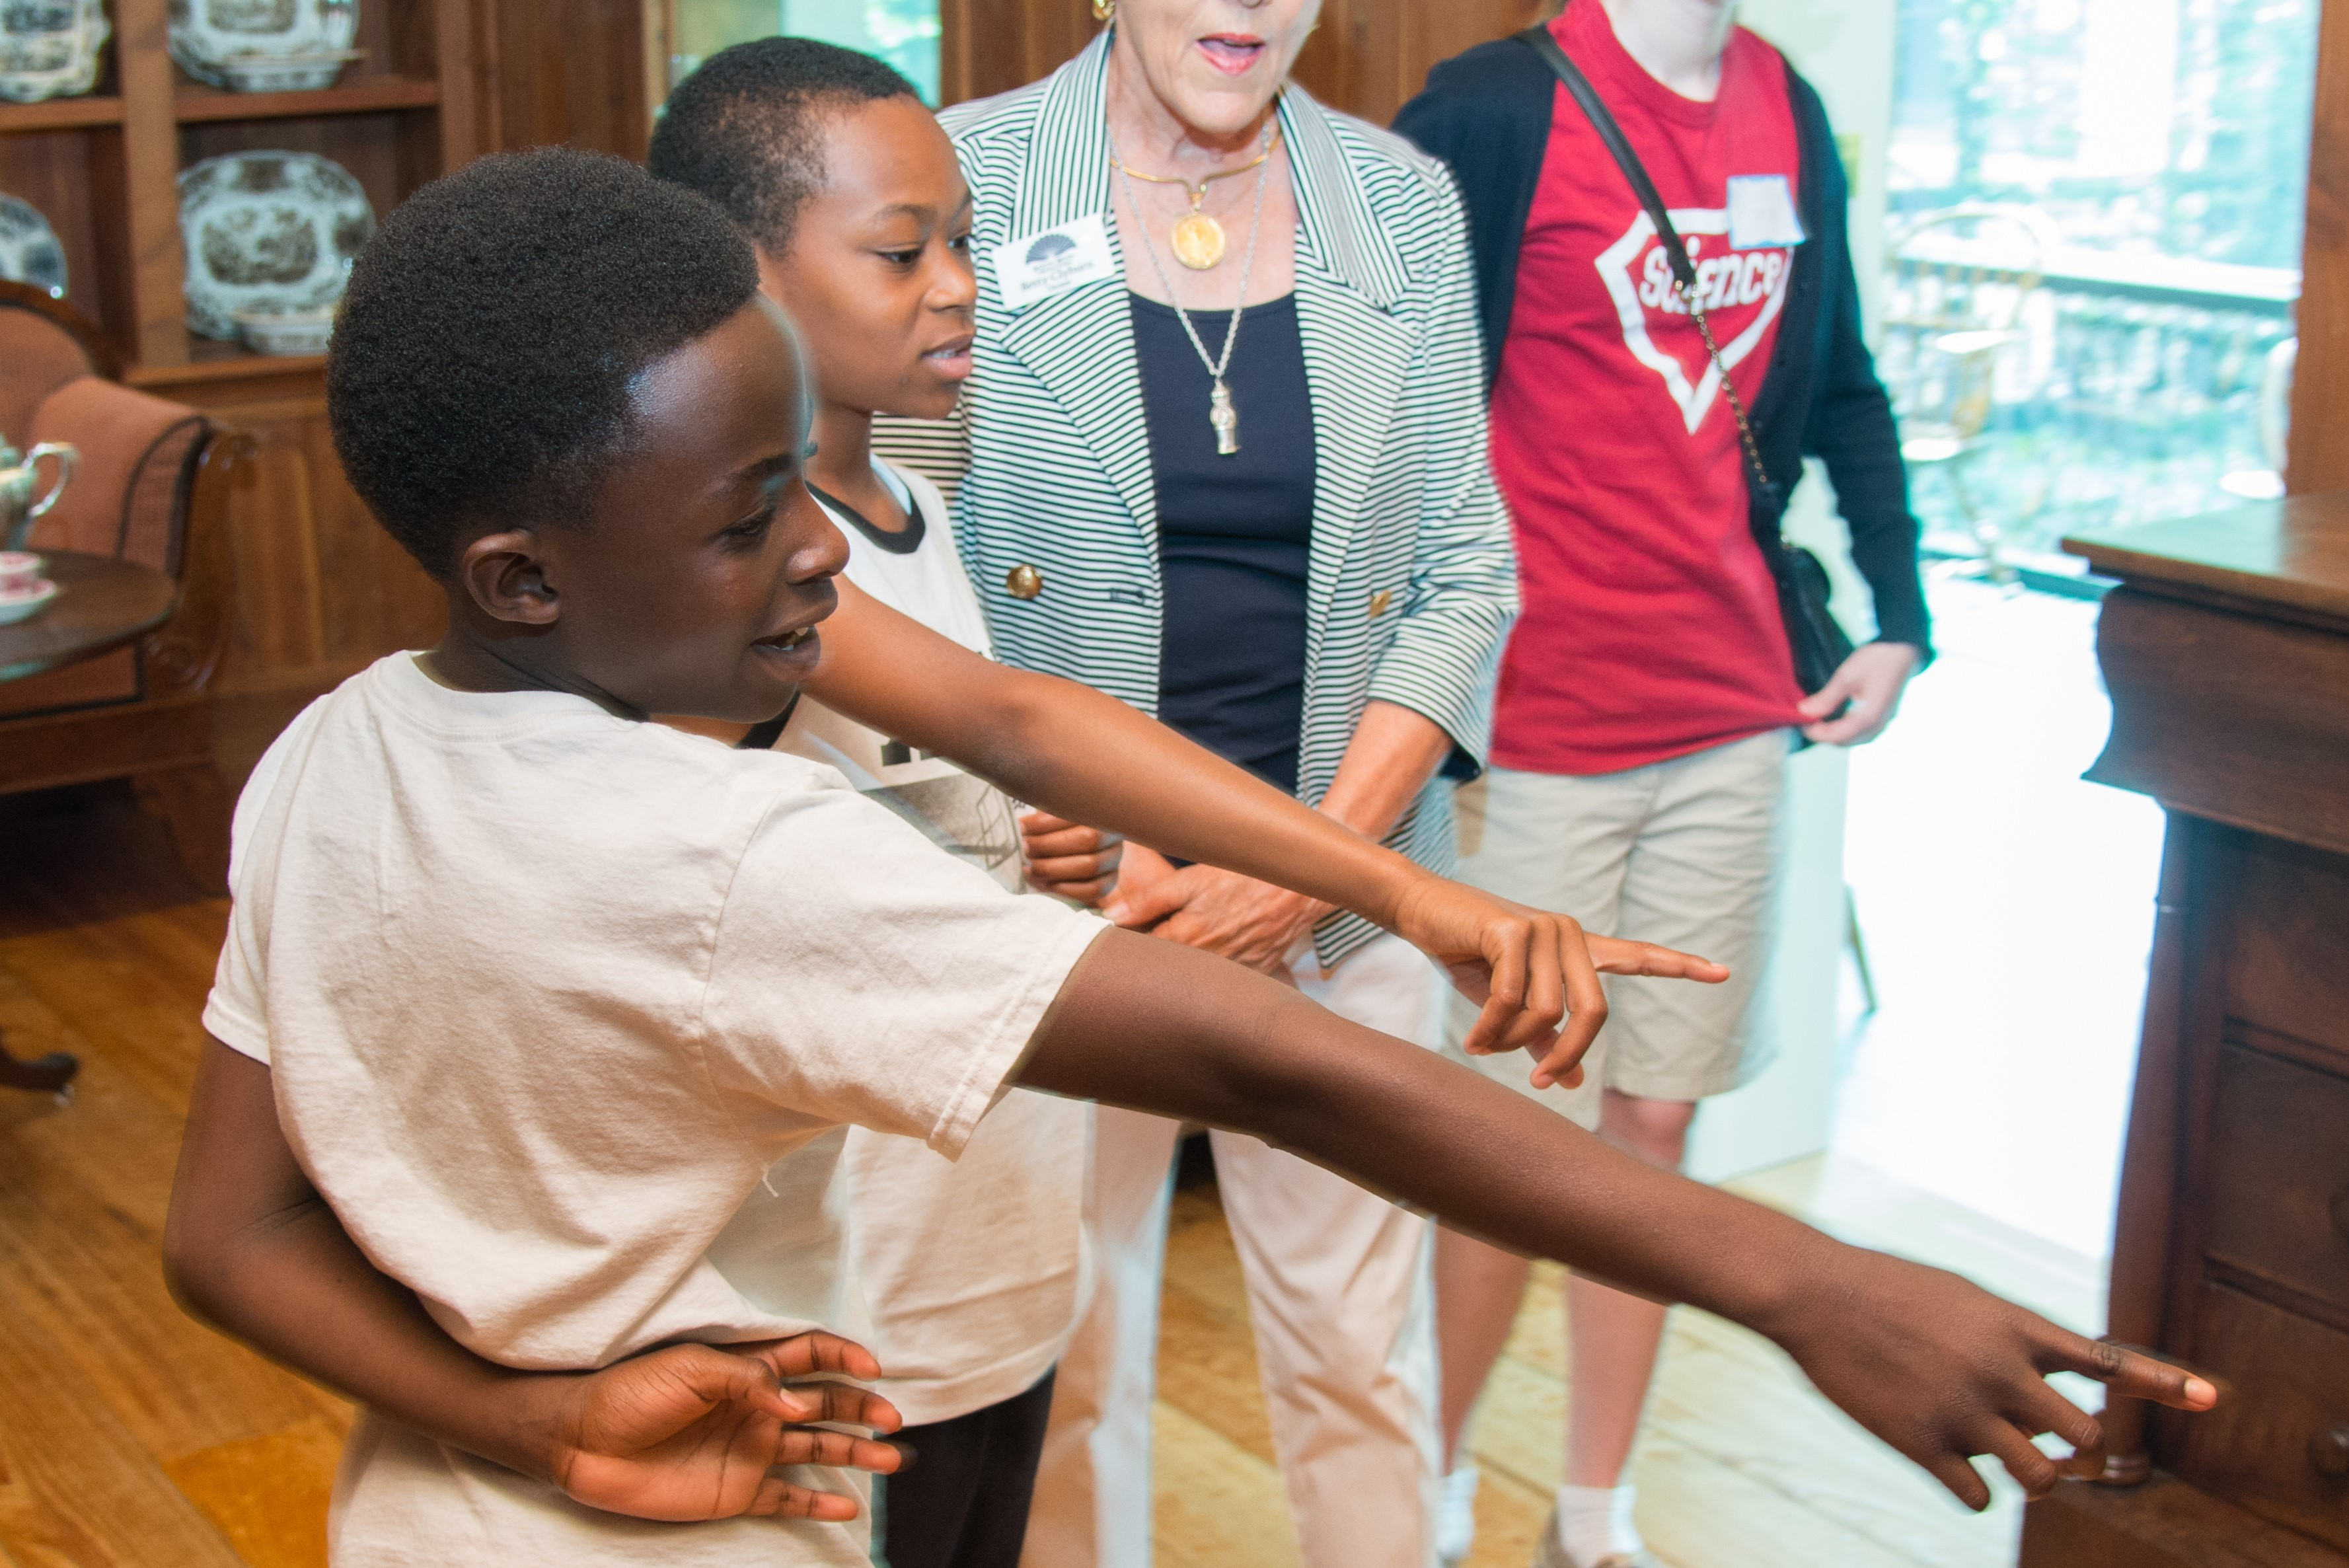 bayou bend school tours - kids pointing